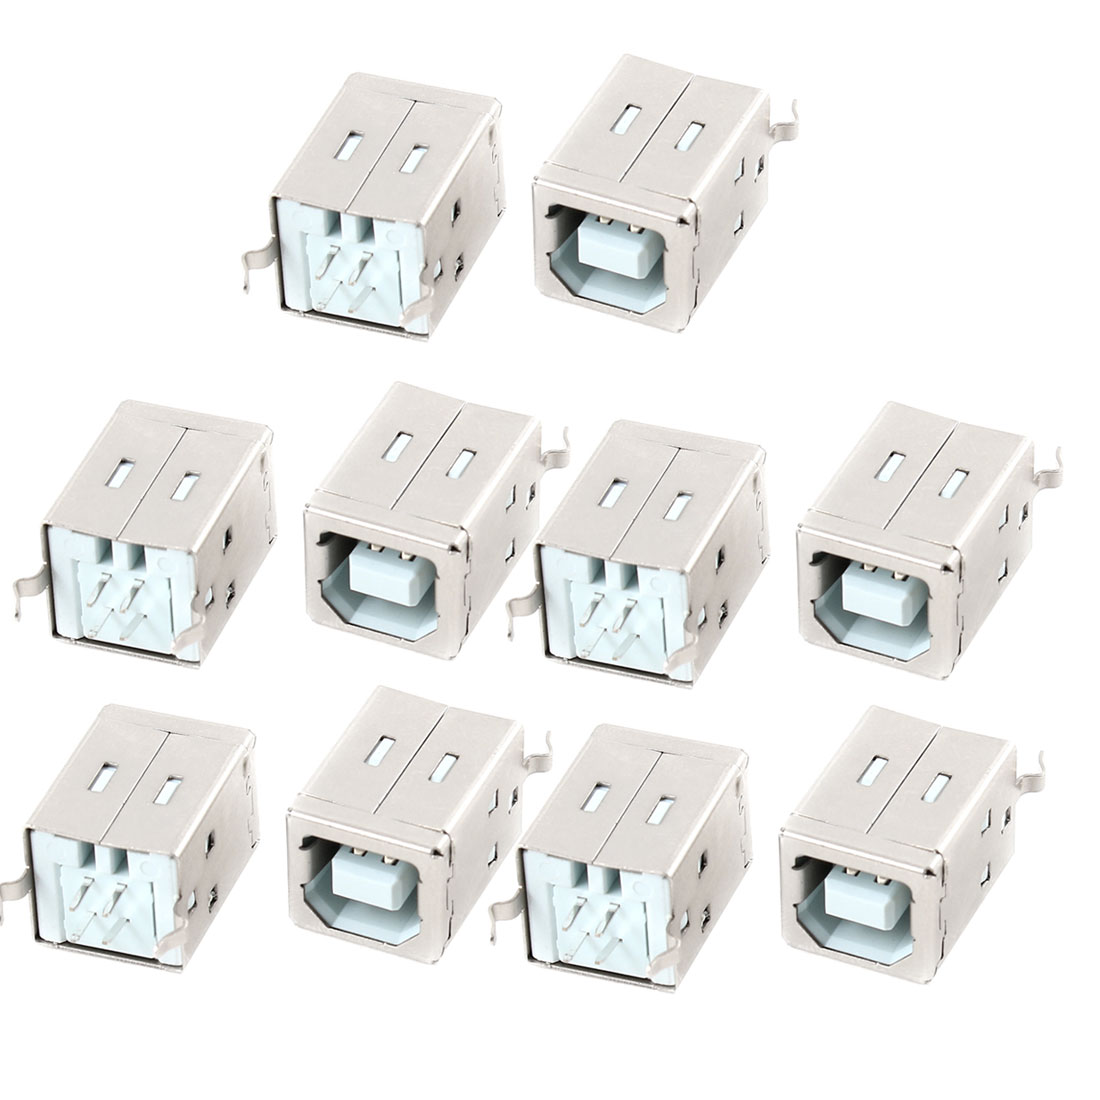 10pcs USB 2.0 Type B Socket PCB Jack 4 Pins 180 Degree Female Connector